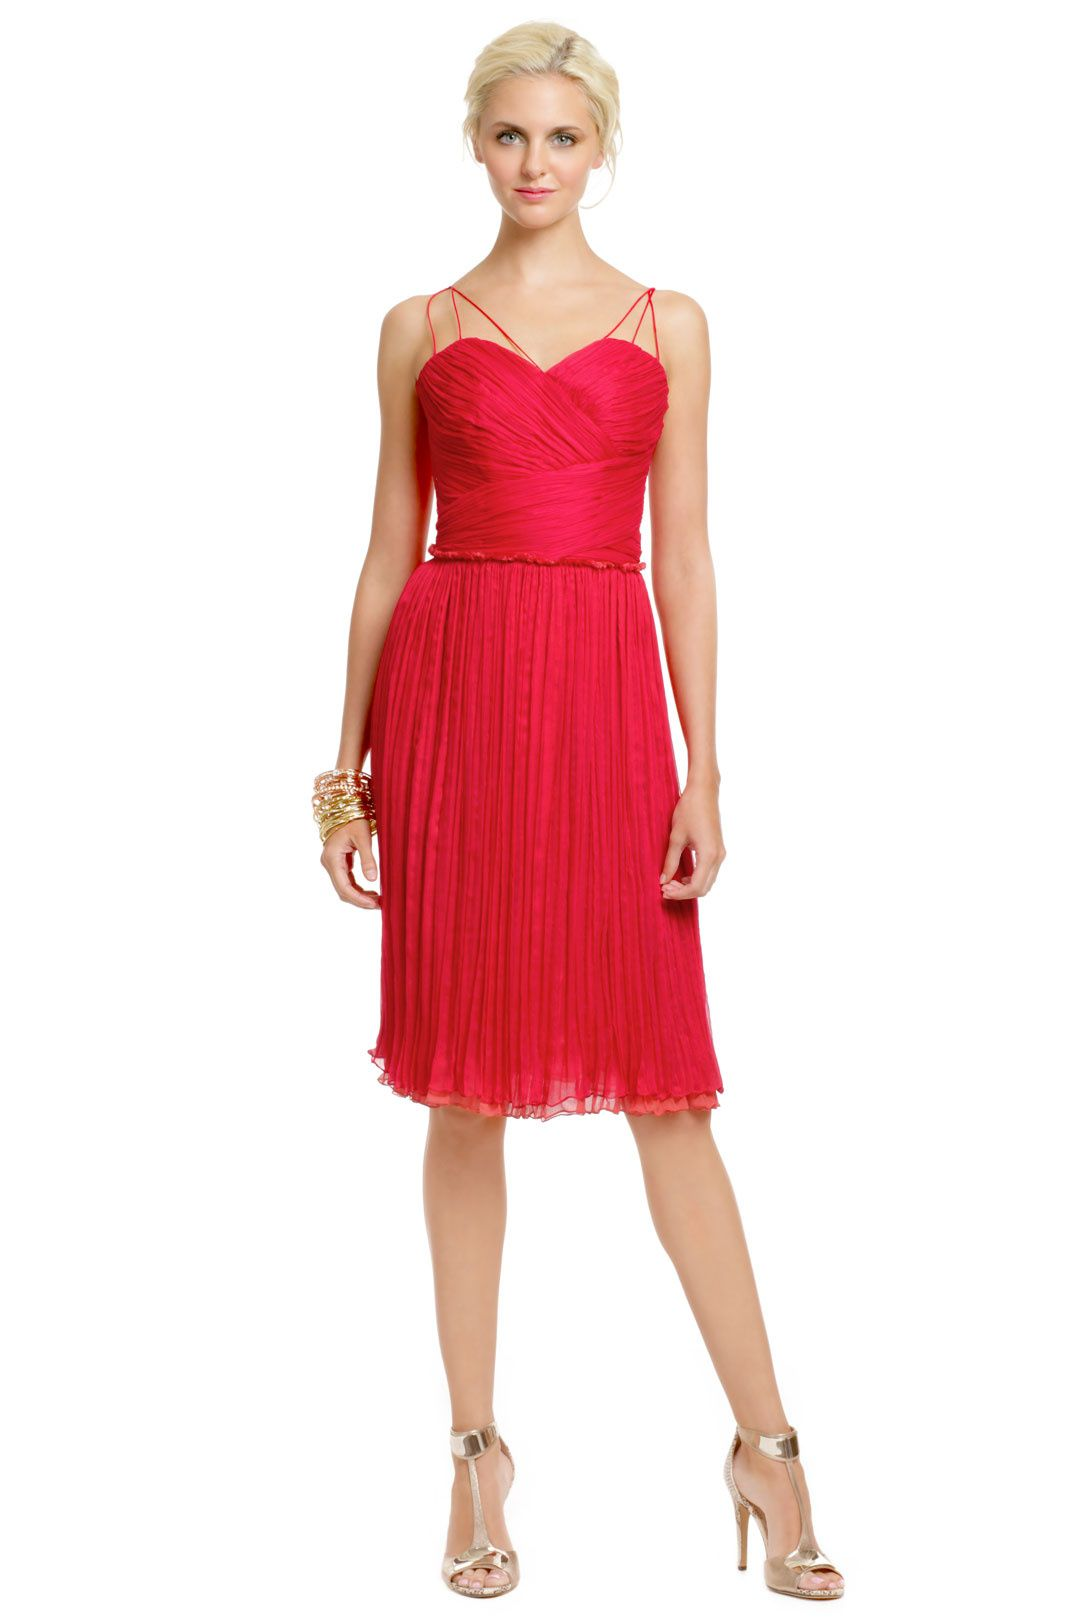 Emmy dress sophie theallet black tie and gatsby